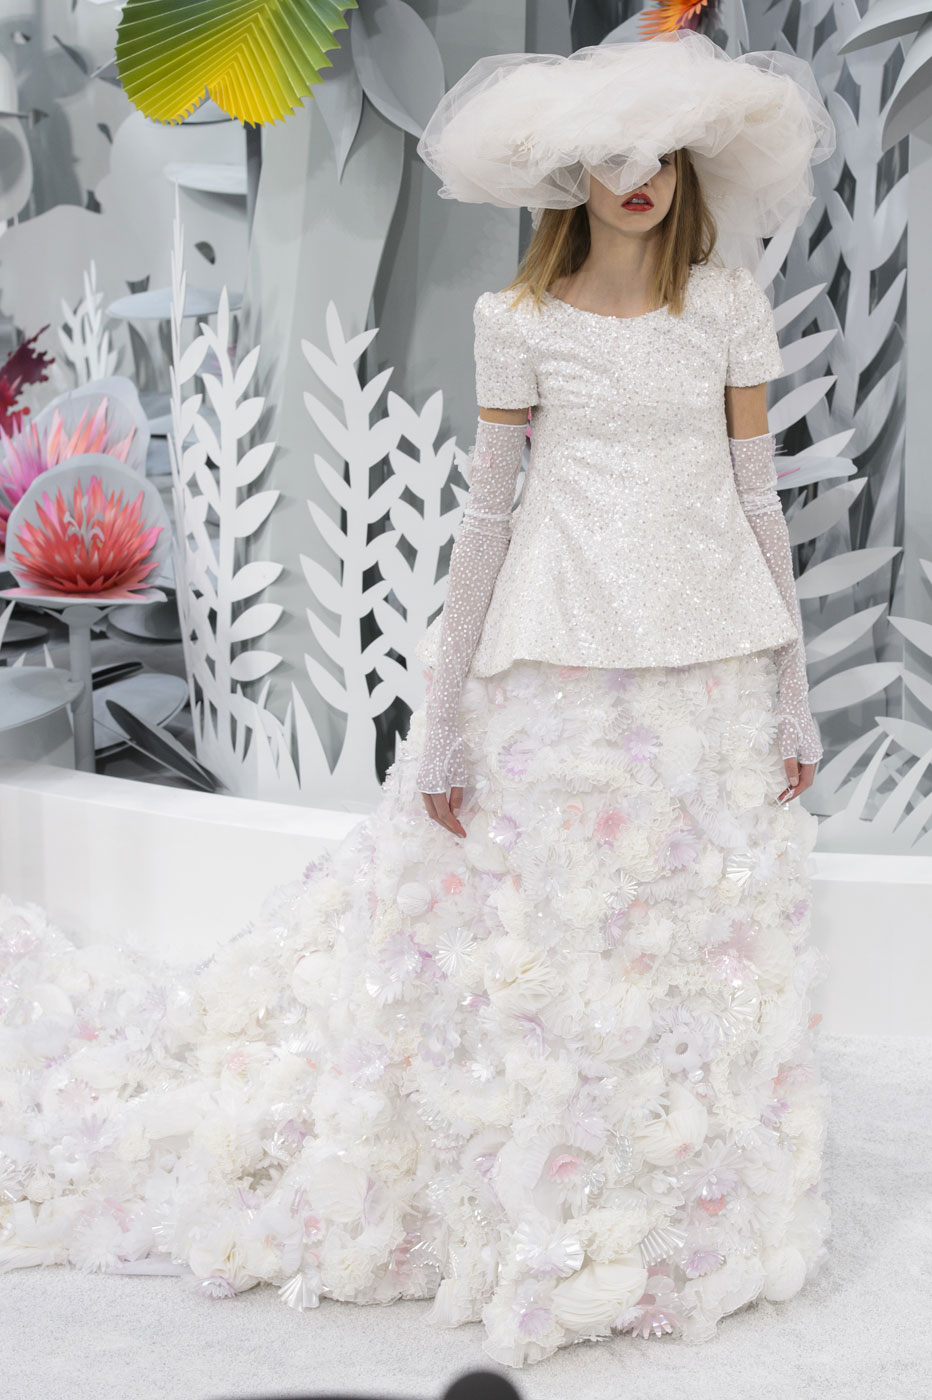 Chanel-fashion-runway-show-haute-couture-paris-spring-summer-2015-the-impression-155